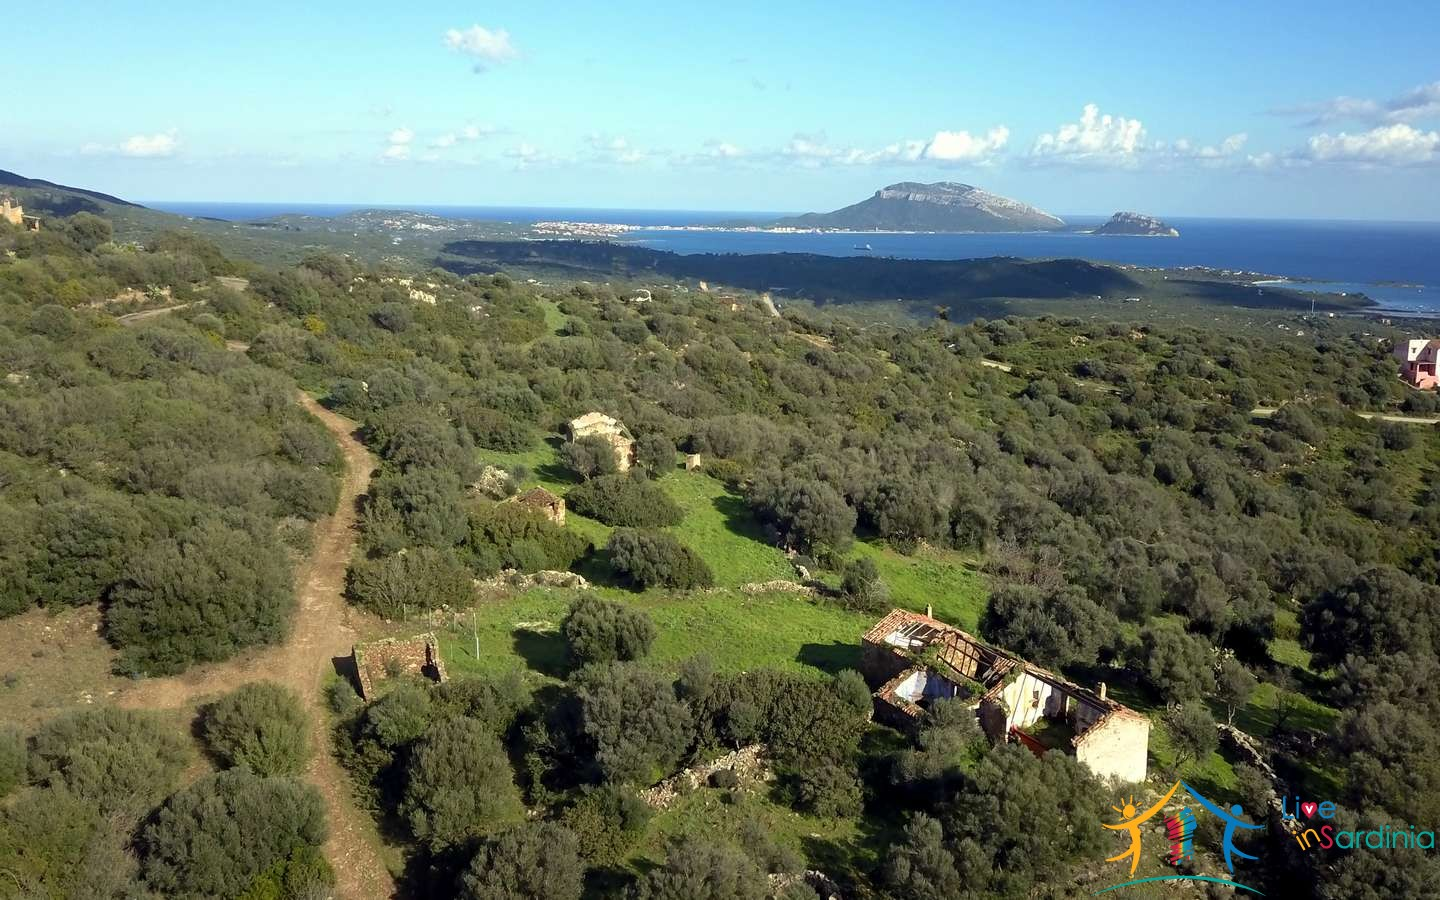 Sea View Stazzu For Sale Olbia Sardinia ref. Muriscu 2